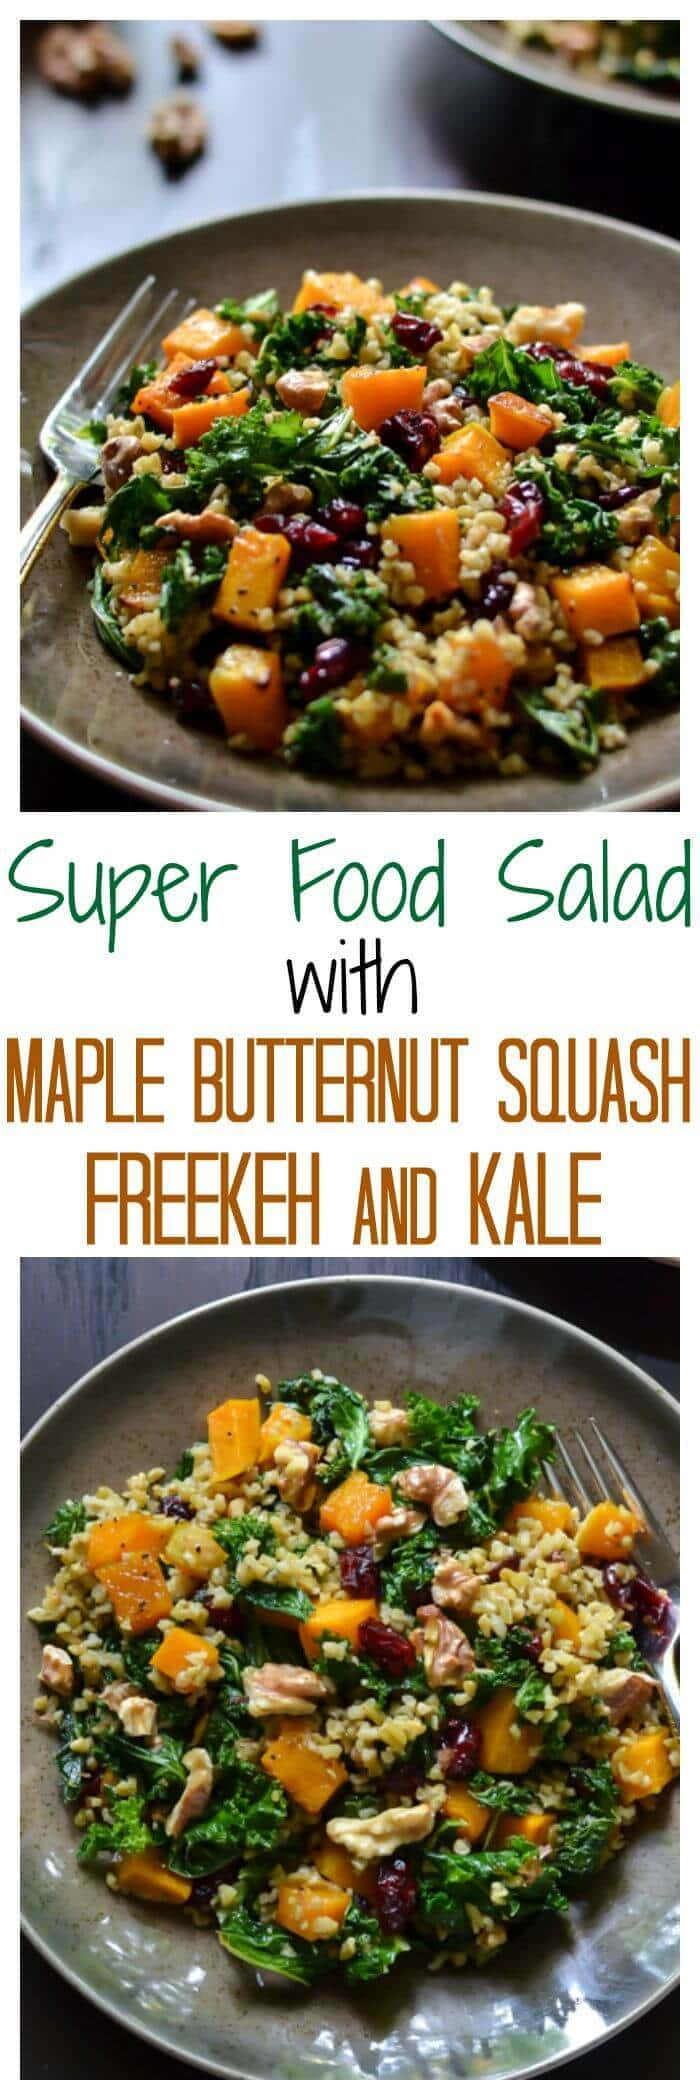 Maple Butternut Squash Freekeh Salad with Kale